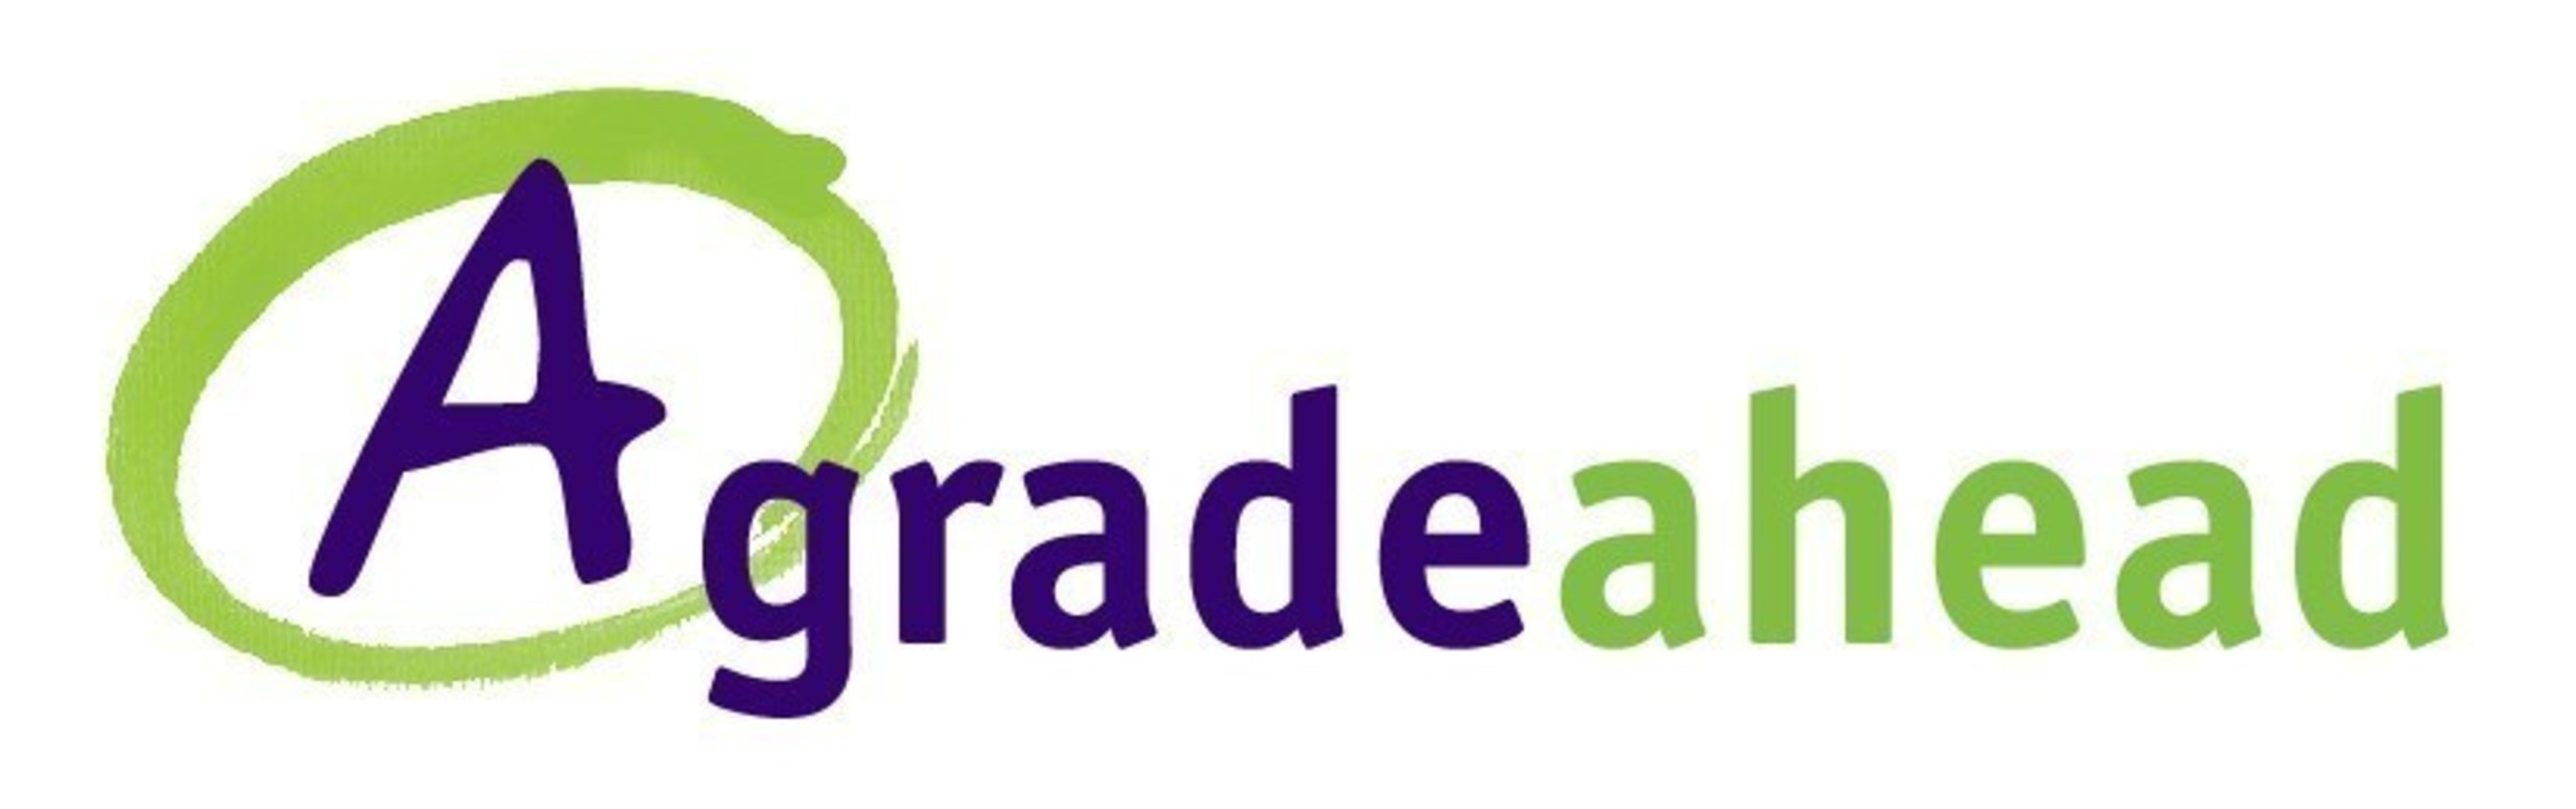 MathWizard is now A Grade Ahead. There new logo and brand reflects the breadth of their services which include math, English, science and enrichment camps. With 29 locations in 11 states, parents across the county count on A Grade Ahead's rigorous, year-round enrichment program to challenge their children to higher academic standards.